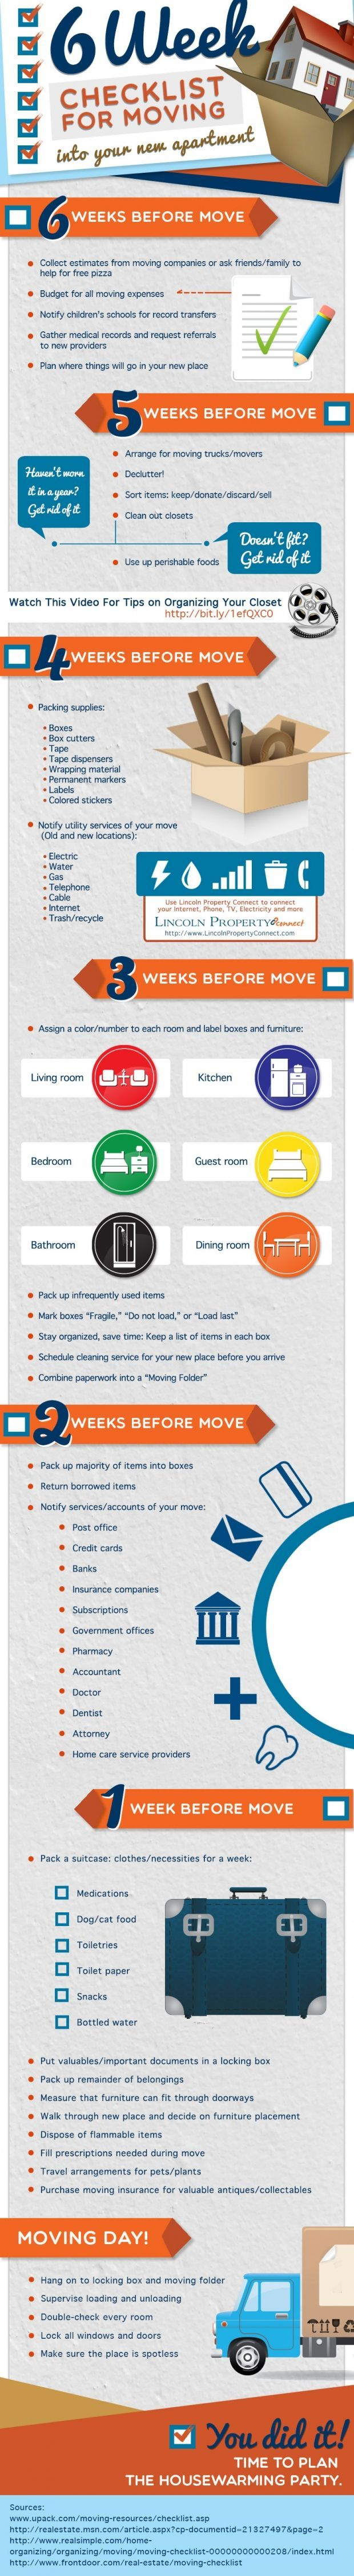 6 Week Checklist For Moving Into Your